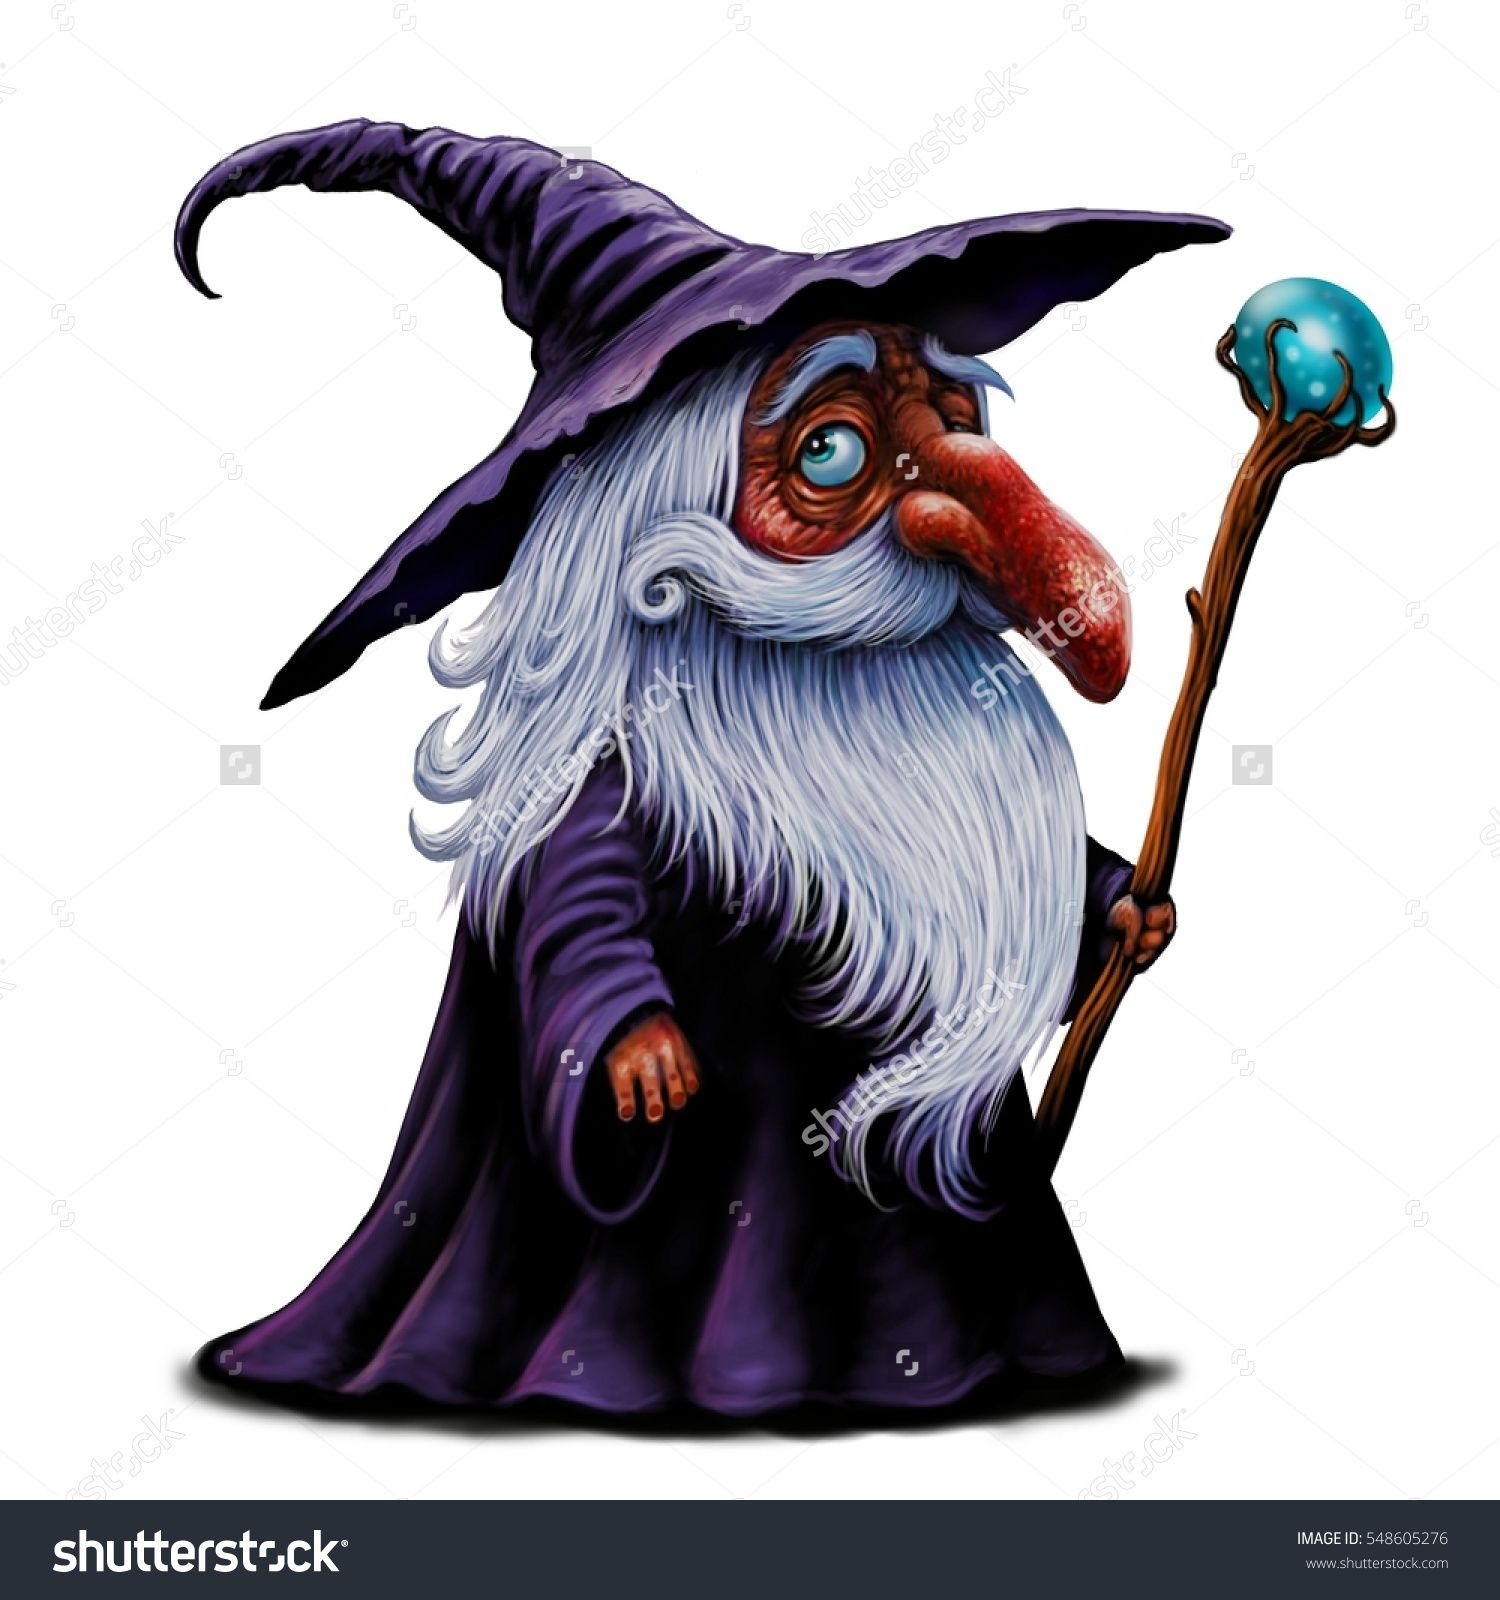 Cartoon Wizard Illustration Magic Old Man With Magic Stick Fairy Tale Character Man Illustration Cartoon Illustration Prints for nurseries, wizard illustrations, turtle on 300gsm cotton rag paper, limited edition print of 50. pinterest